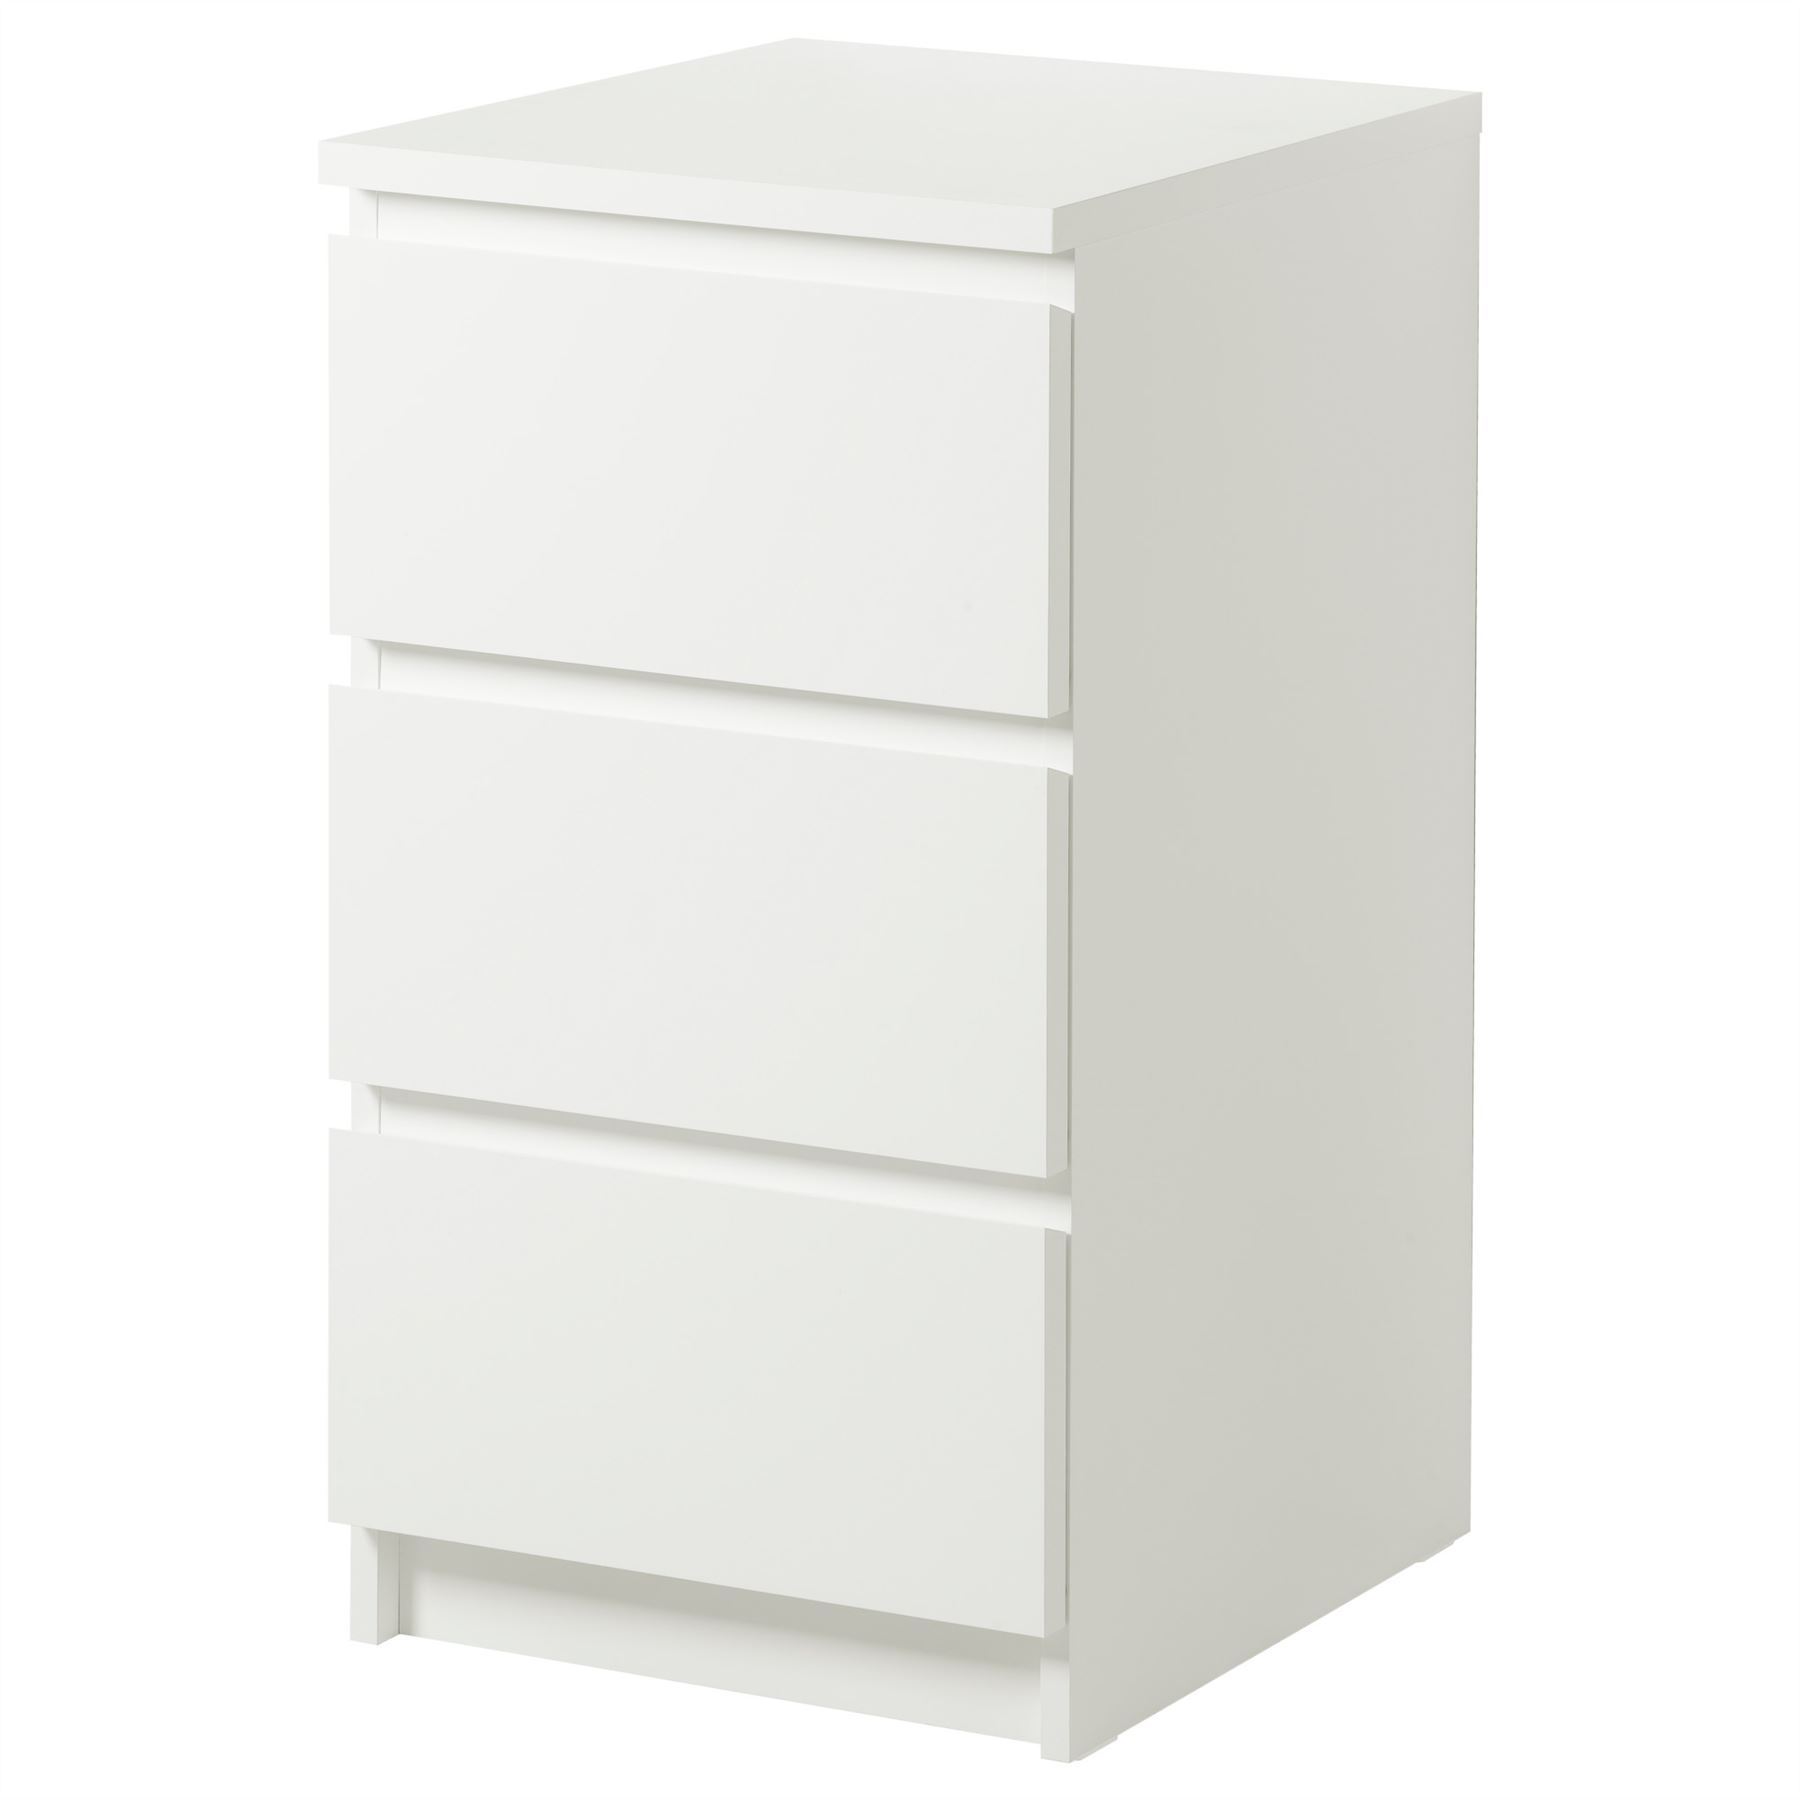 Ikea malm chest of 3 drawers 40x78cm white bedroom furniture ebay for White bedroom chest of drawers